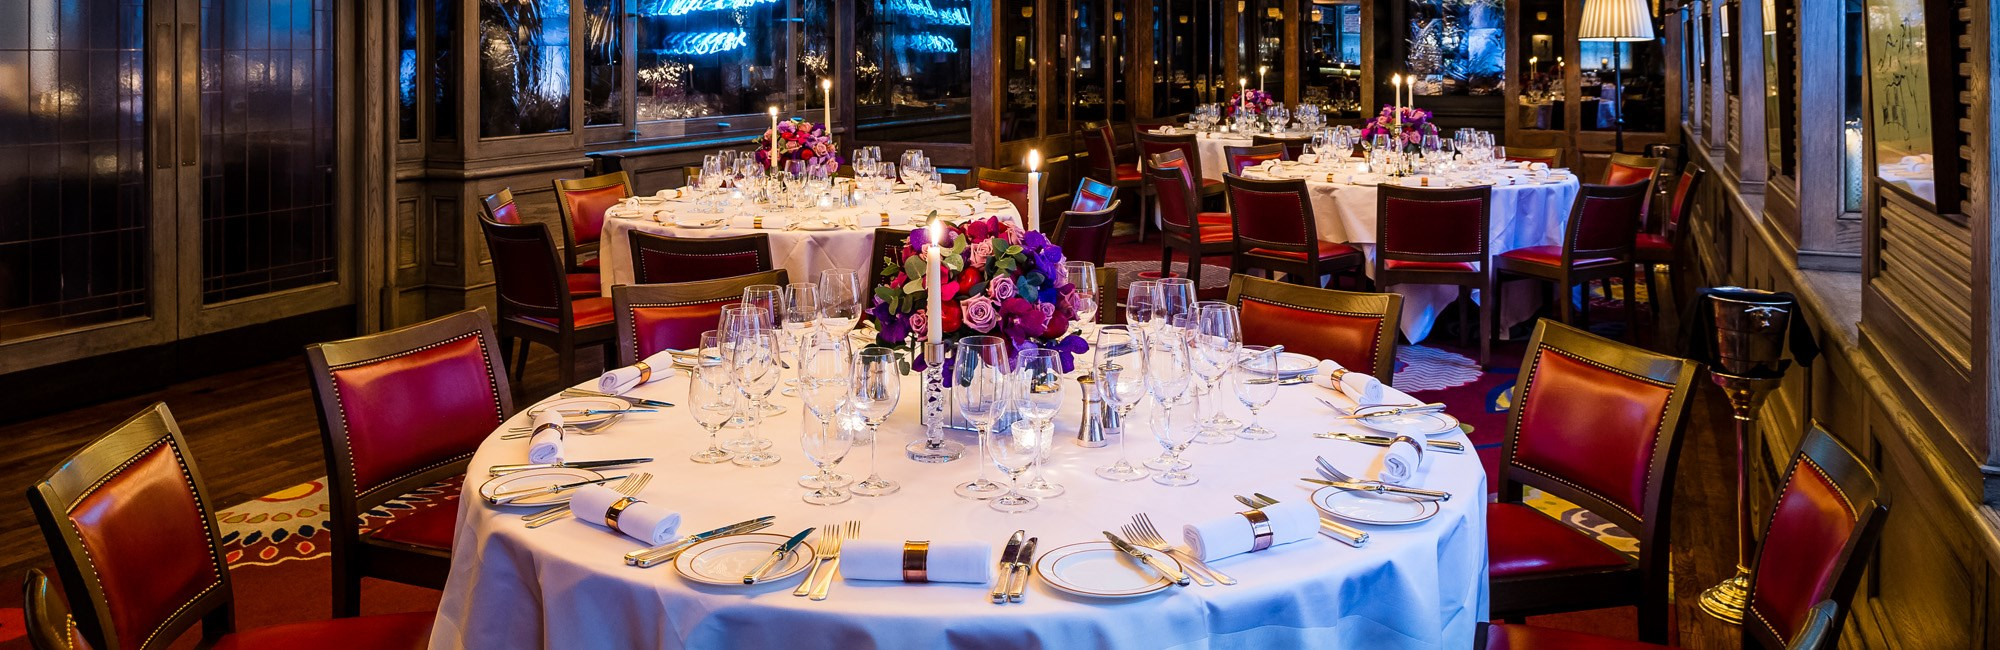 Large Group Dining and Private Hire in Mayfair at 34 Mayfair, The Private Dining Room